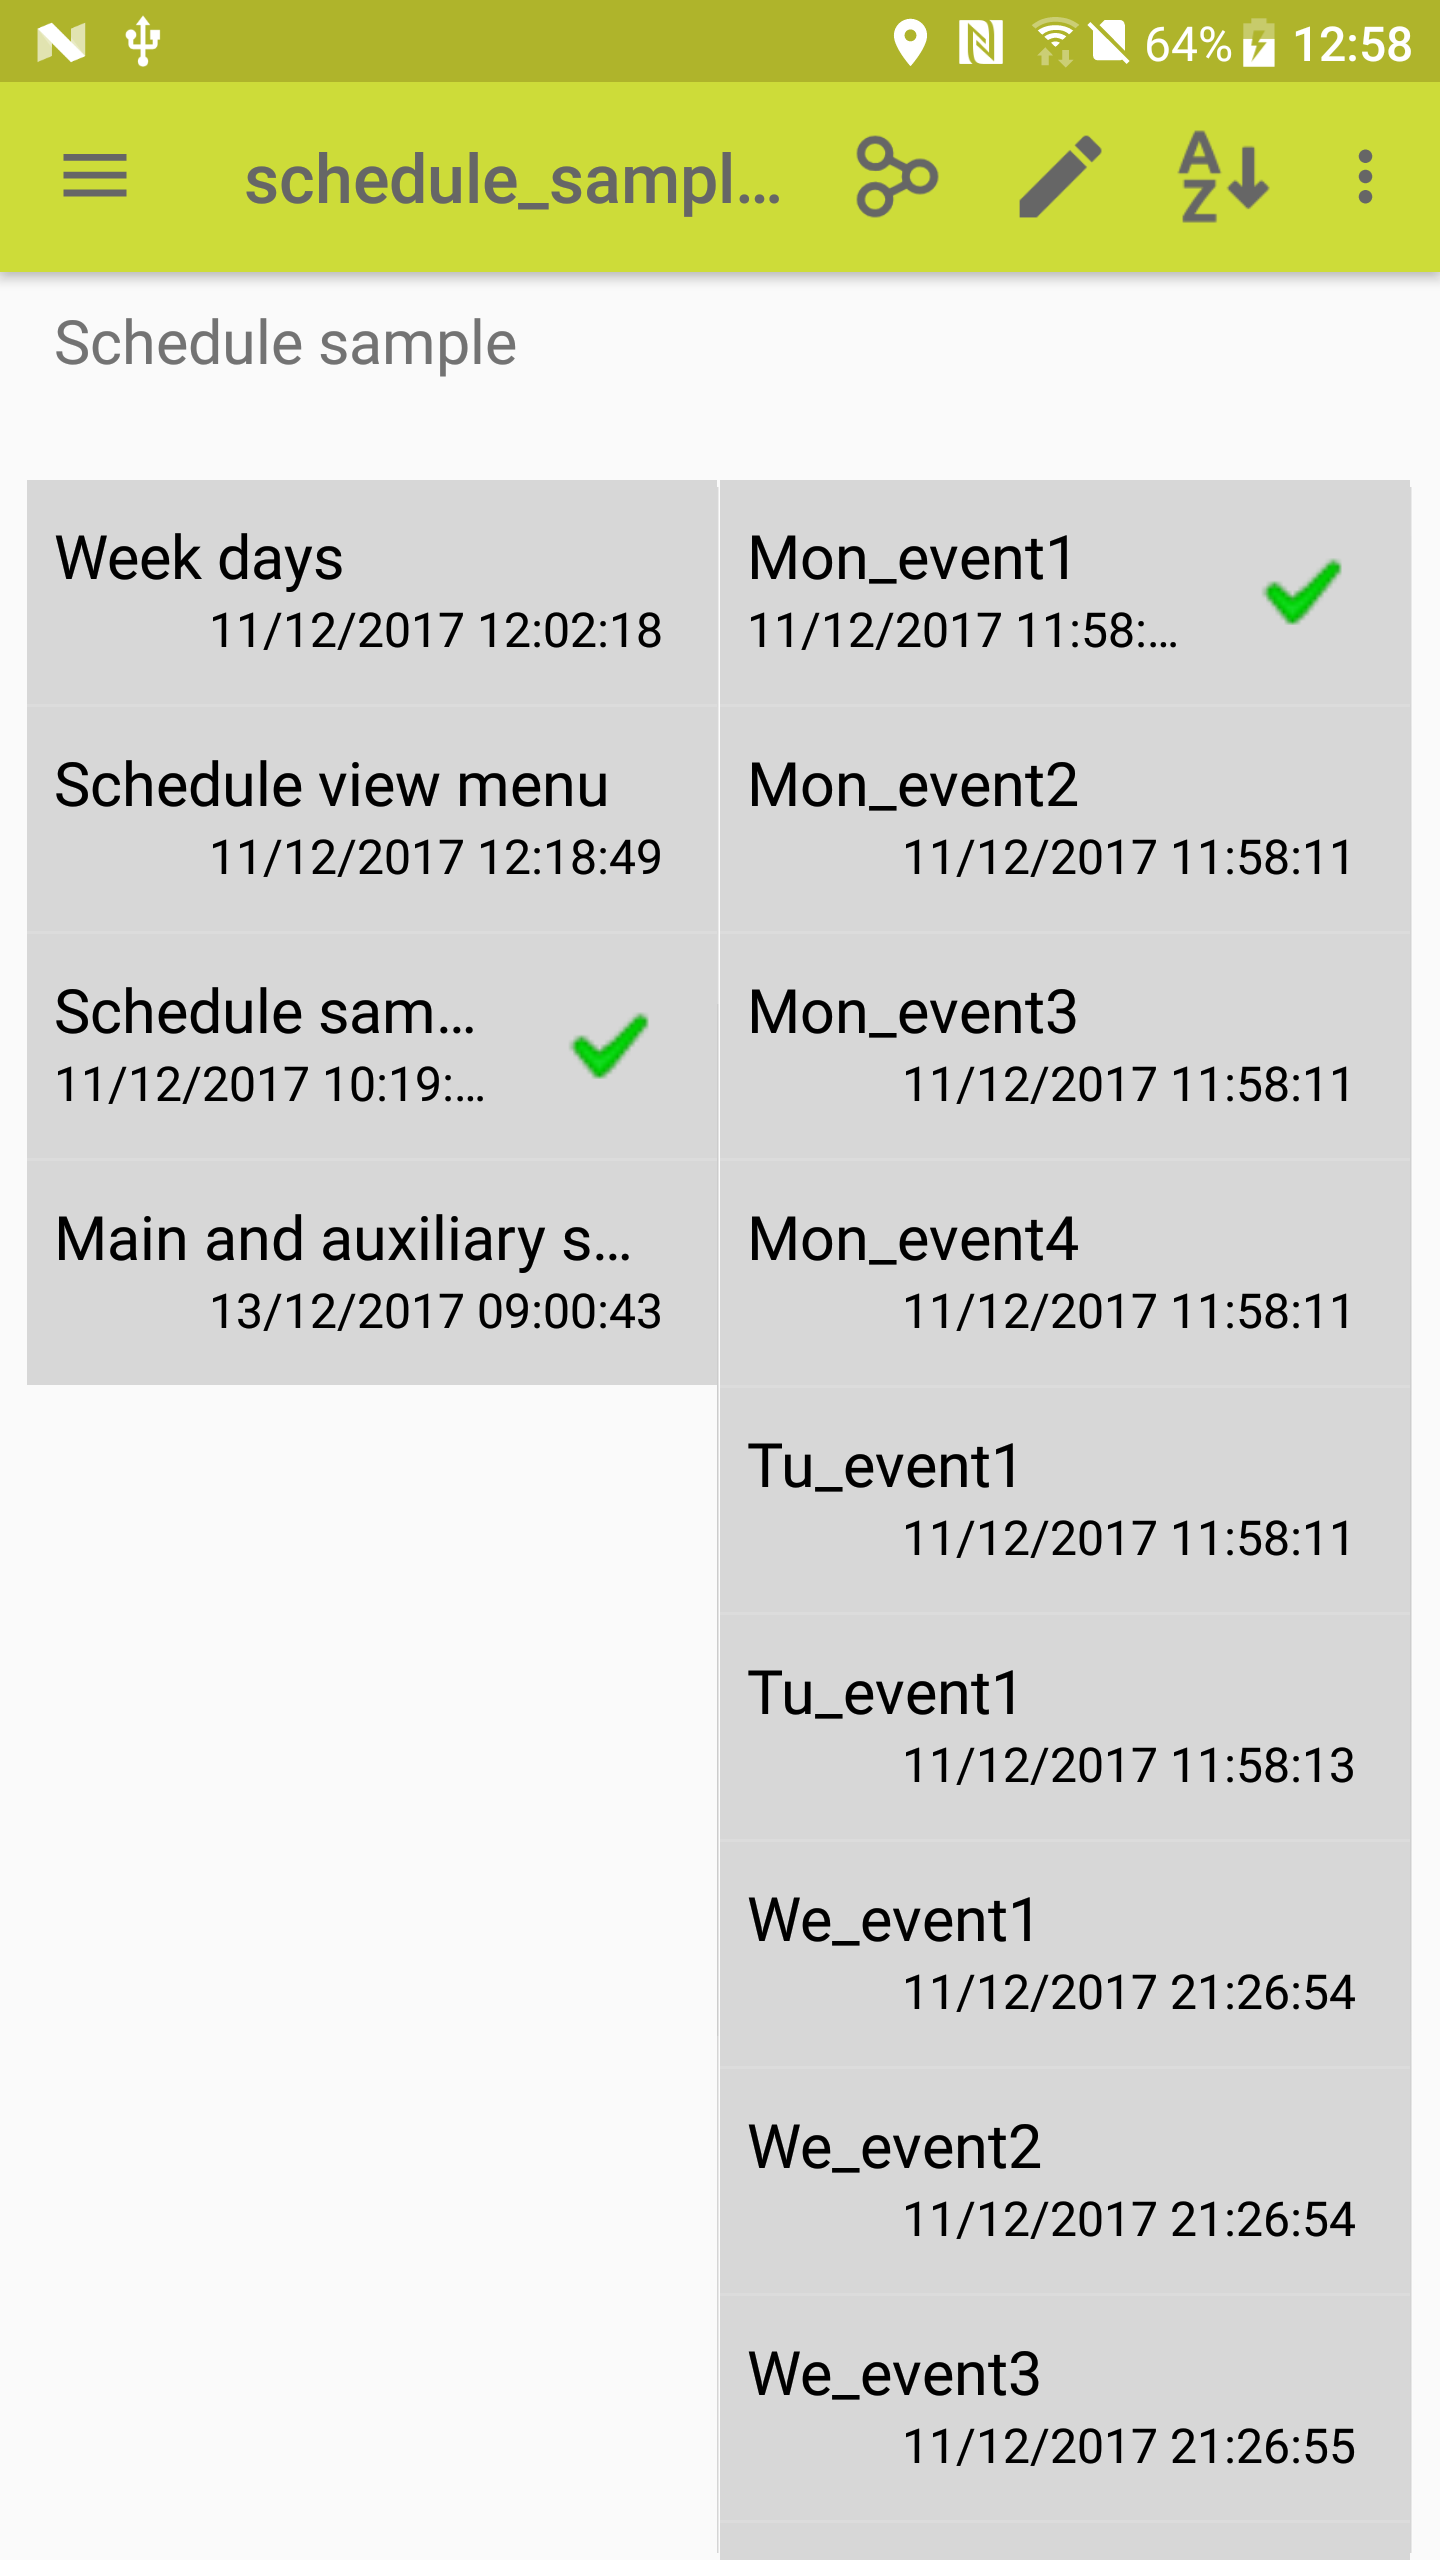 schedule events list sample